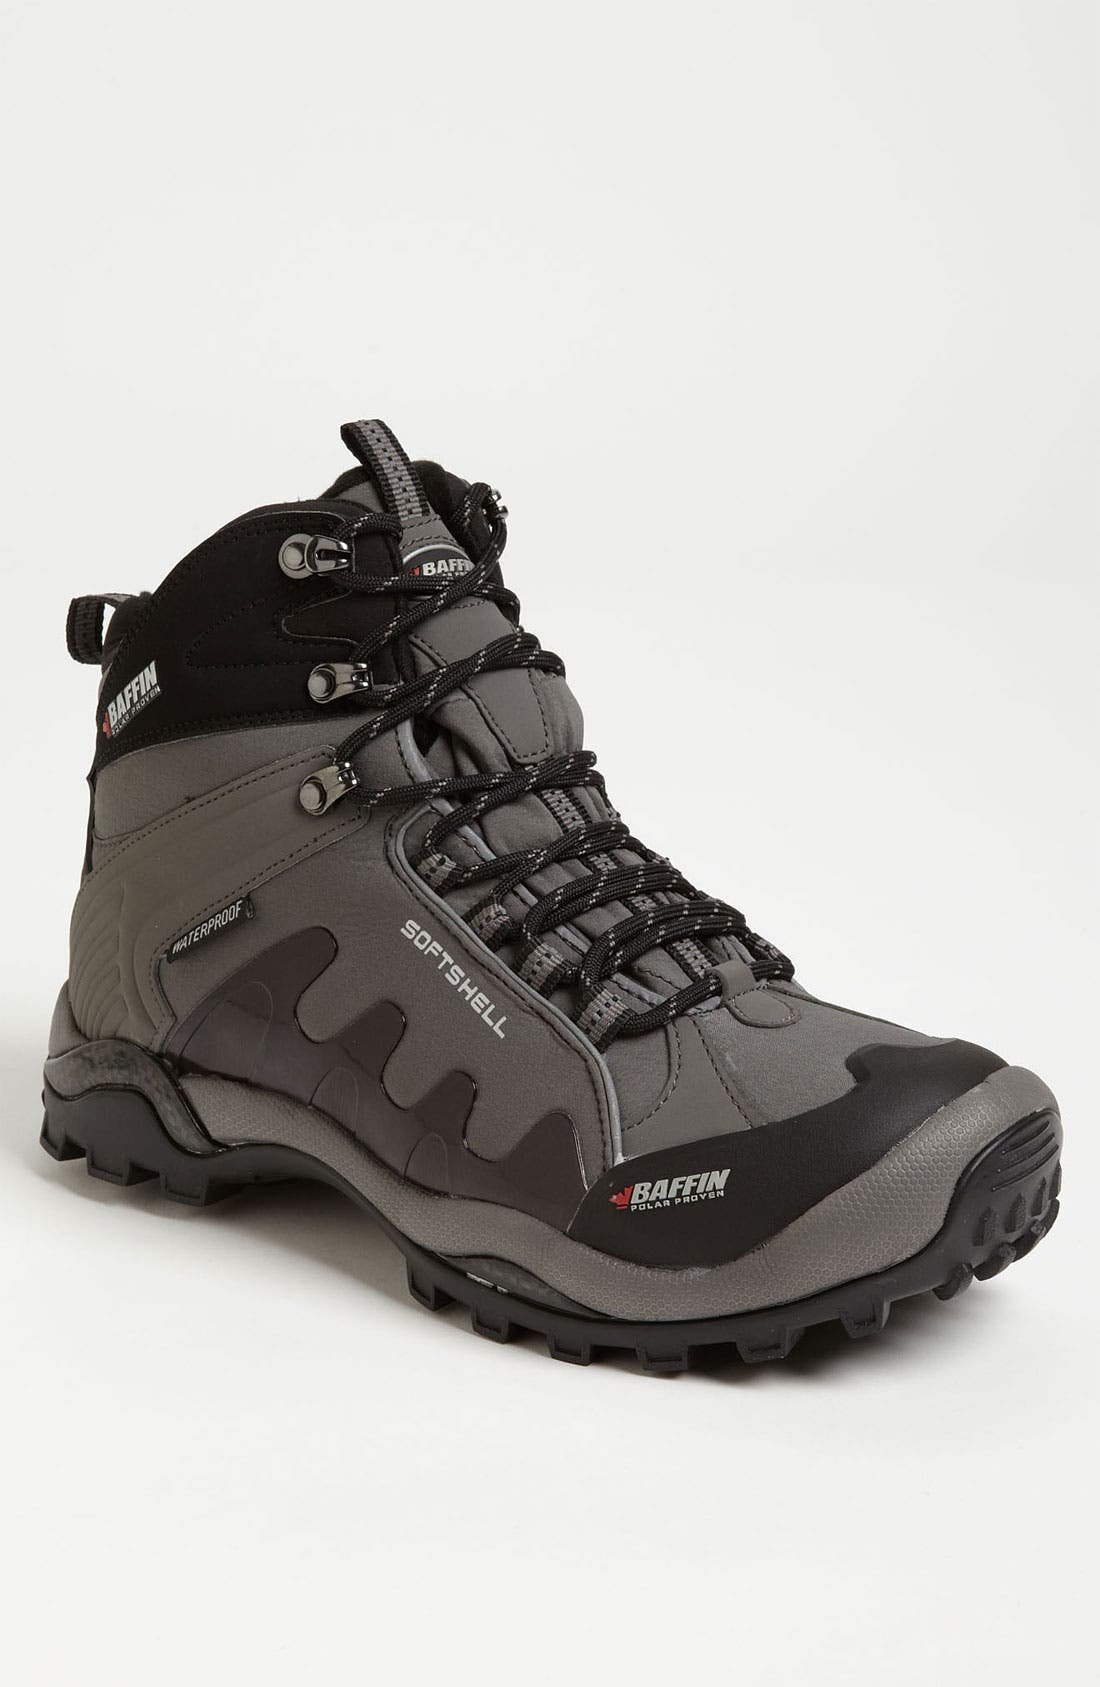 Alternate Image 1 Selected - Baffin 'Zone' Snow Boot (Online Only)